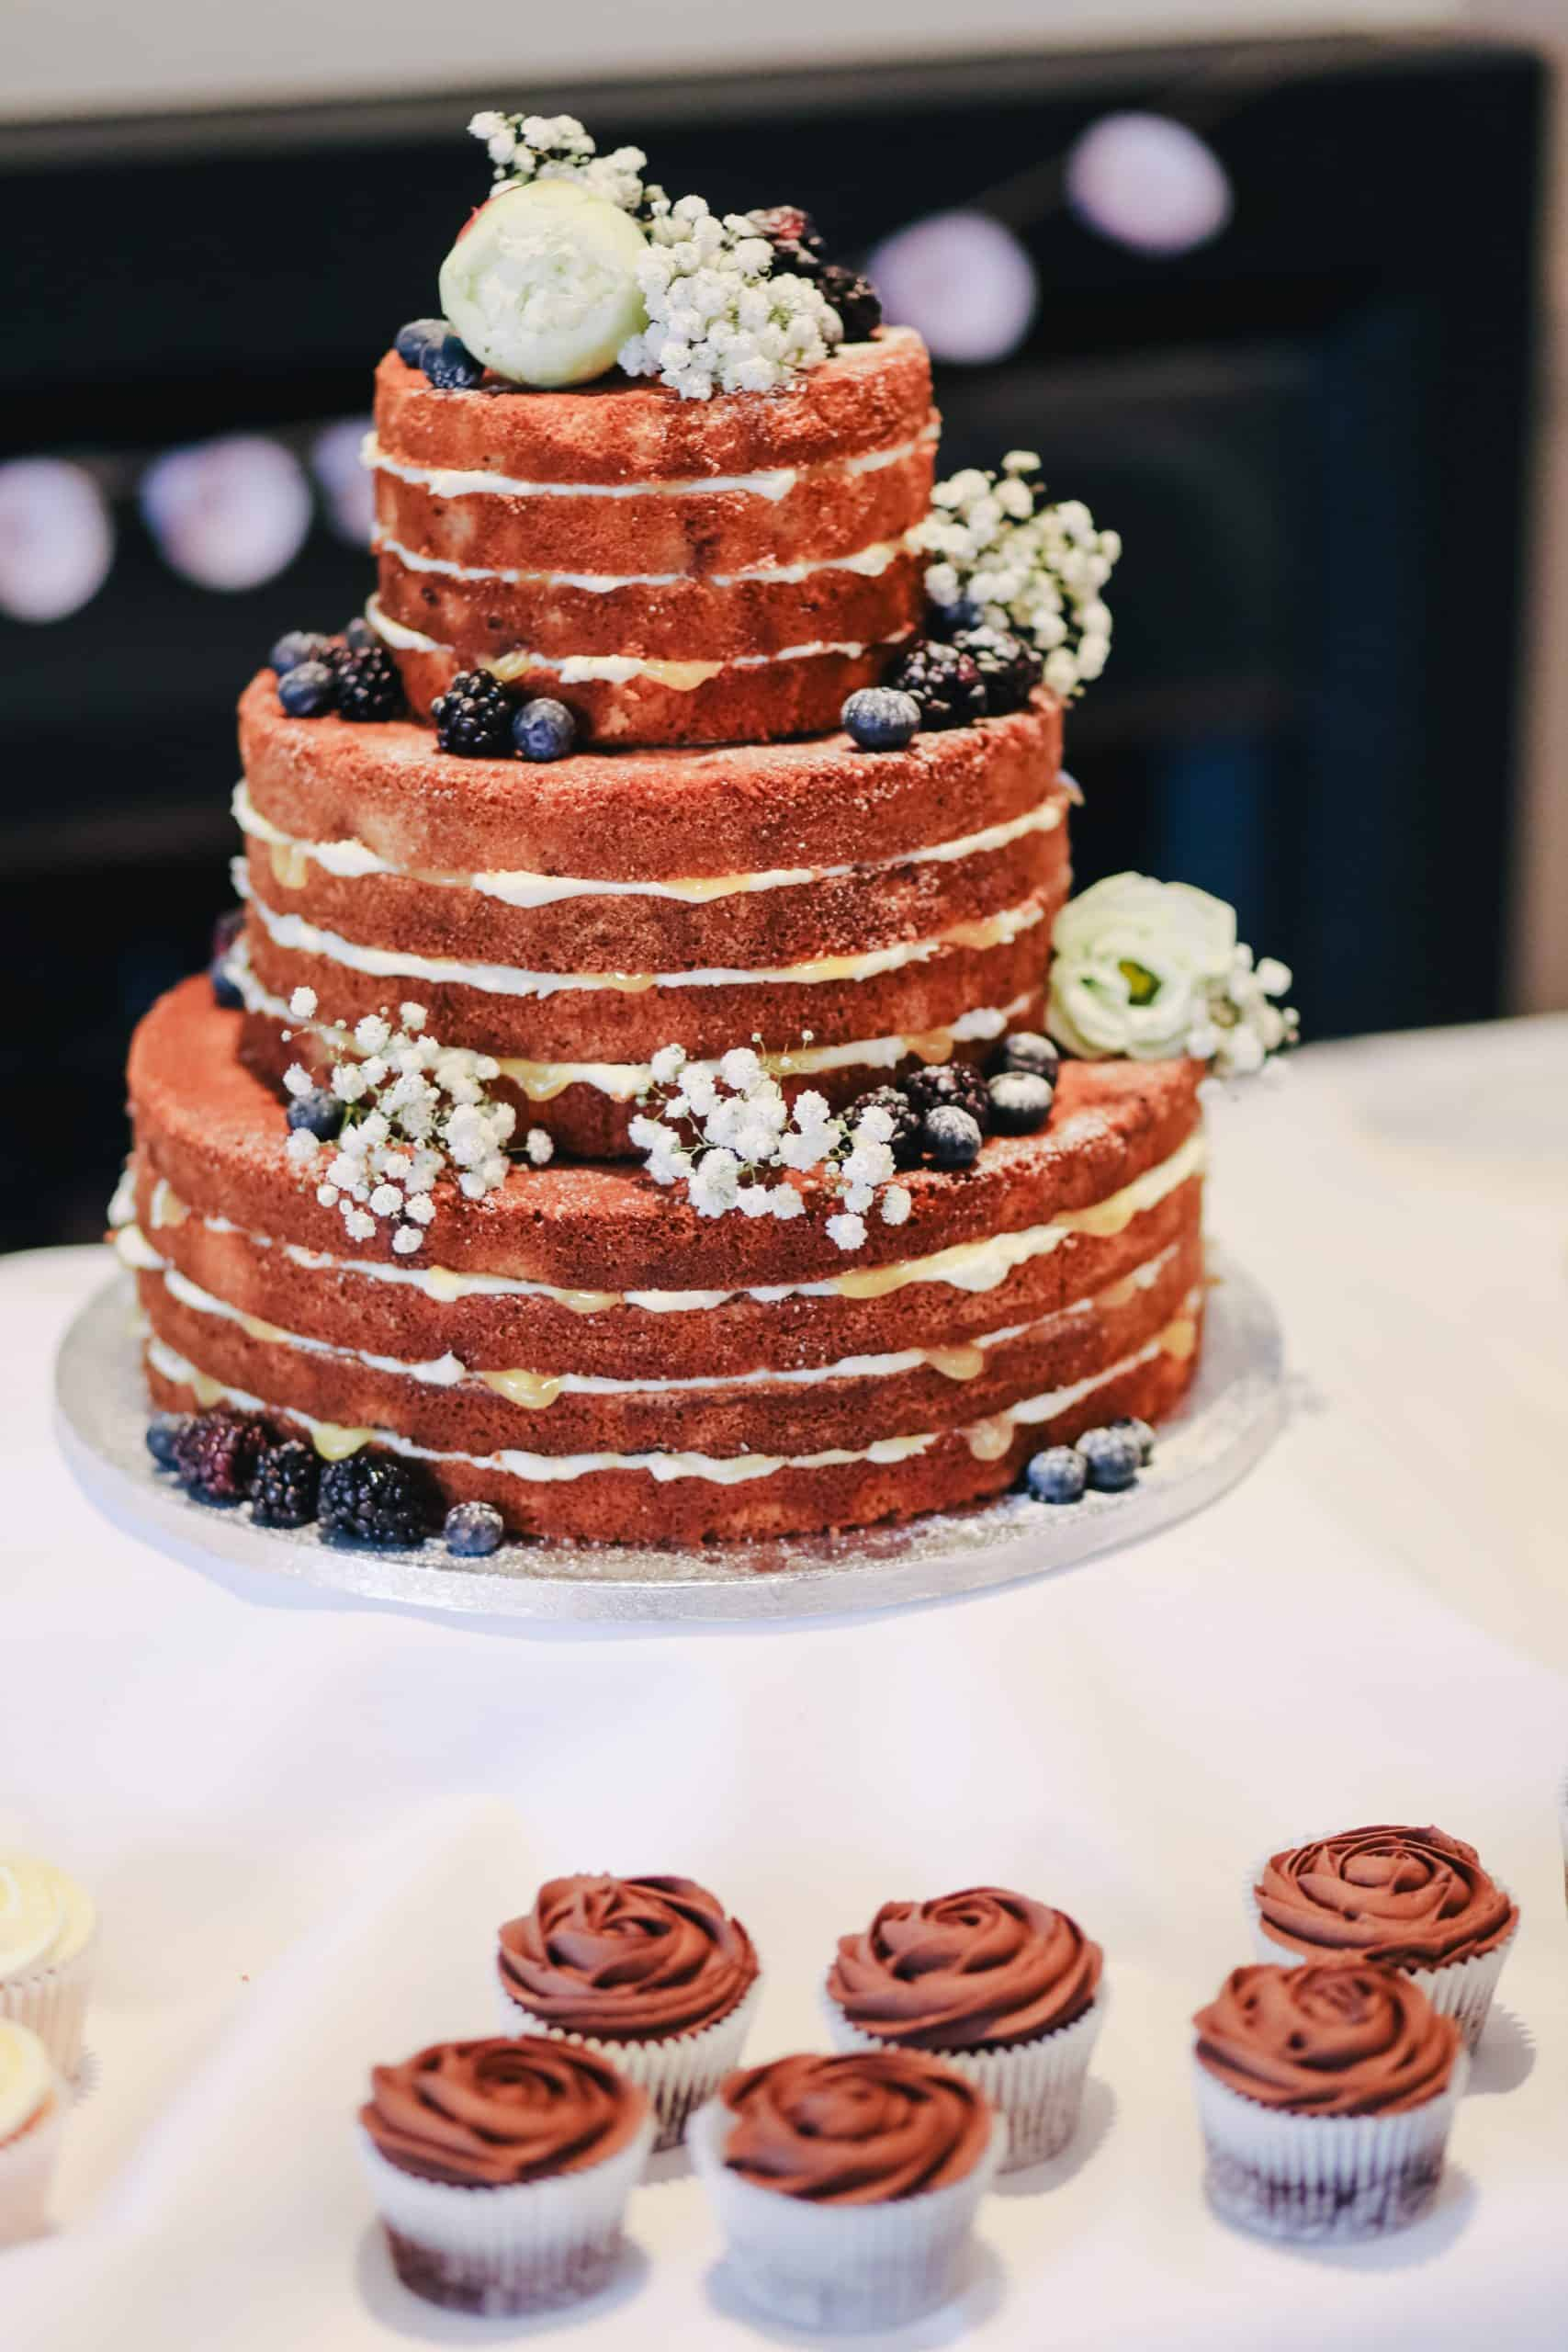 Wedding Cakes: Celebration Of Love